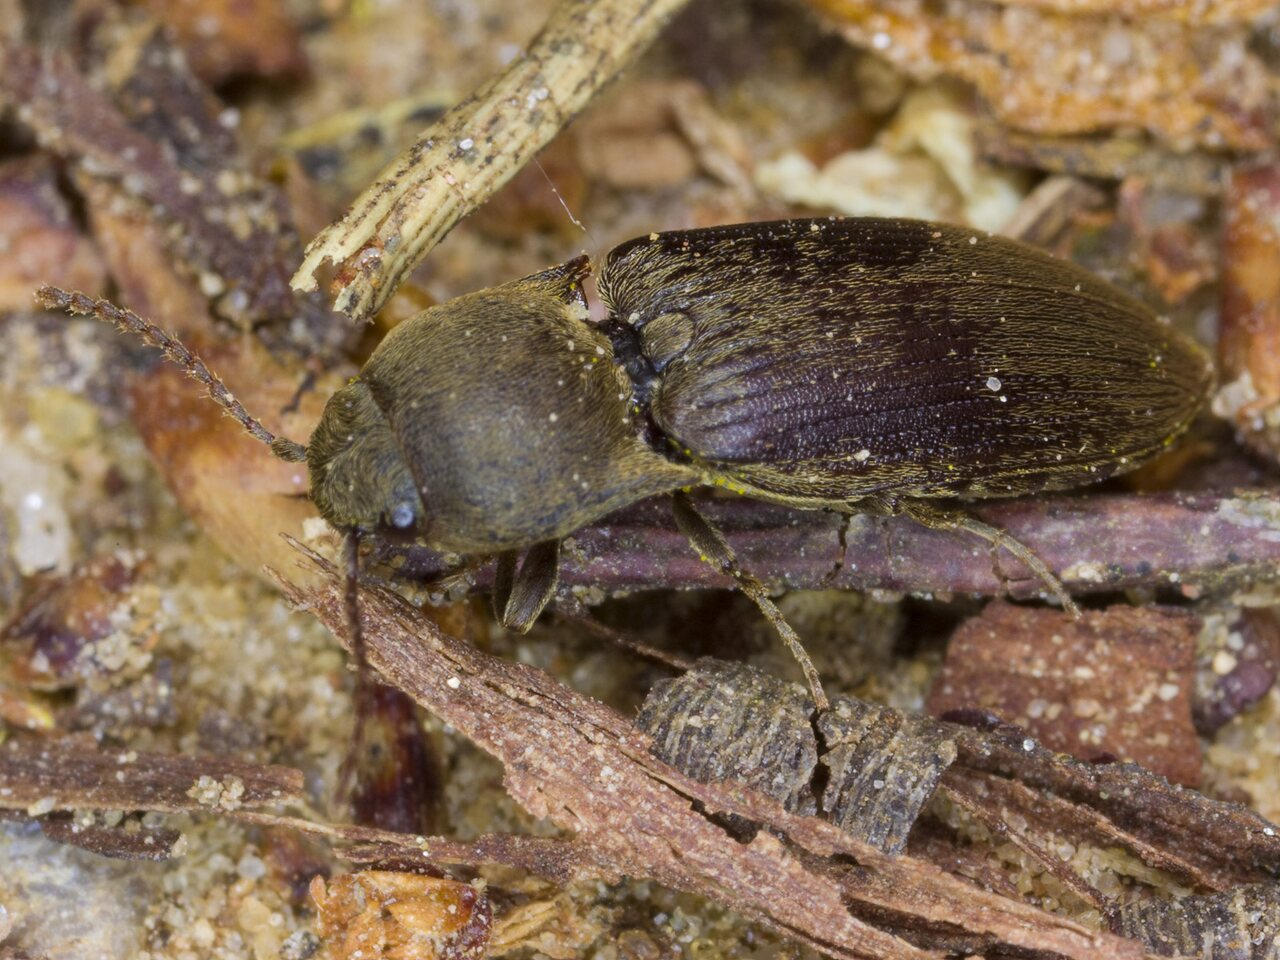 Agriotes-obscurus-3224.jpg